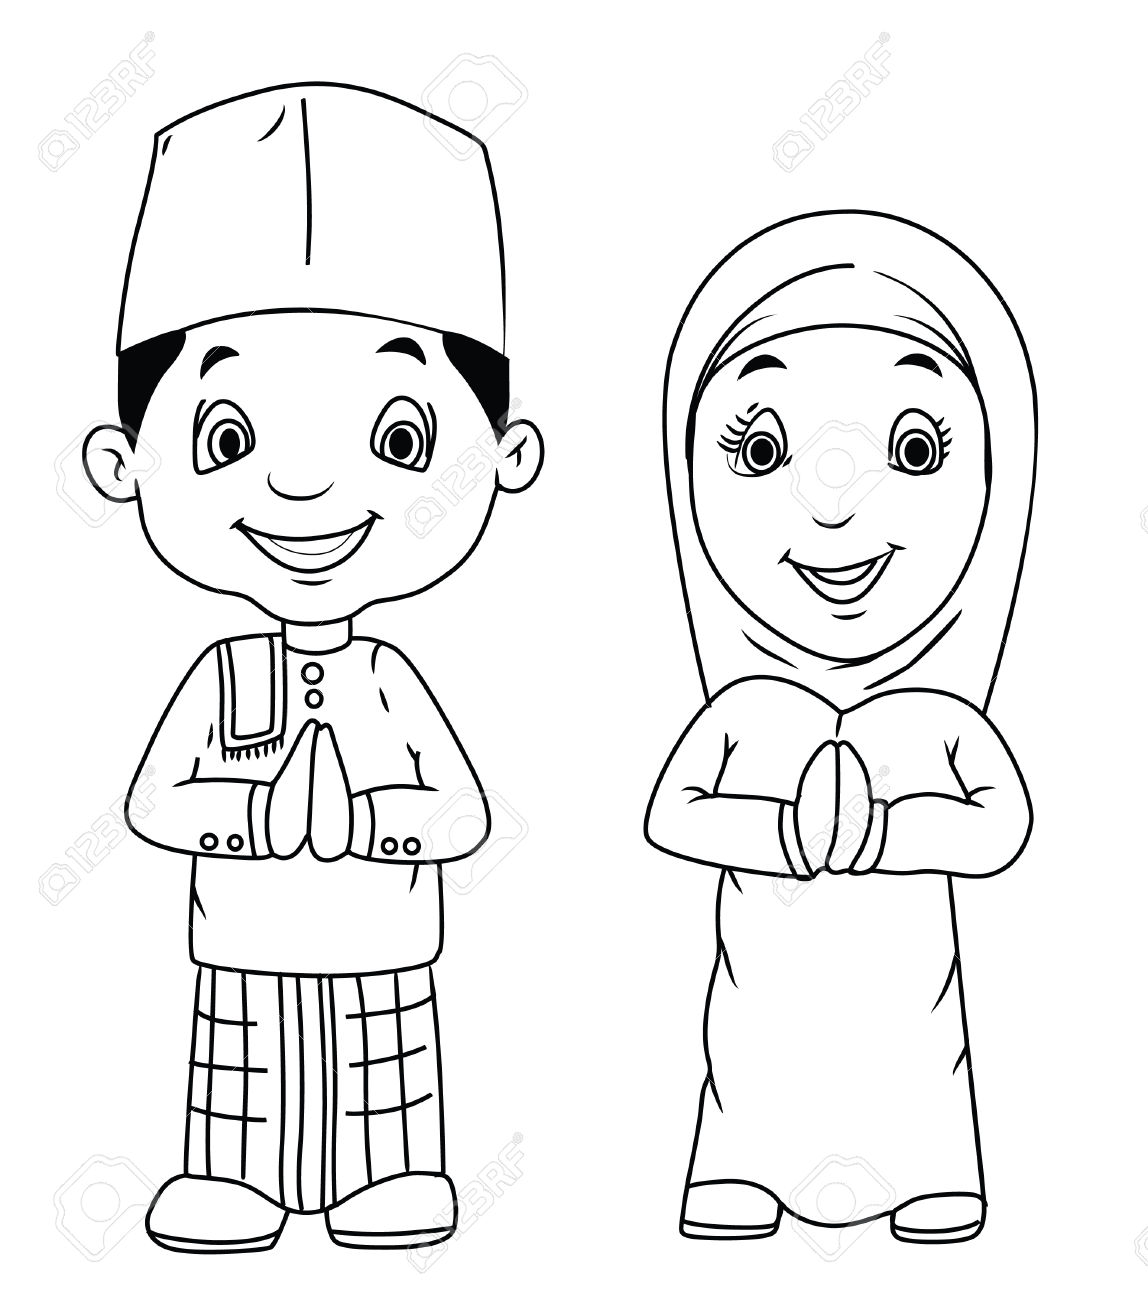 Islamic clipart black and white 4 » Clipart Station.